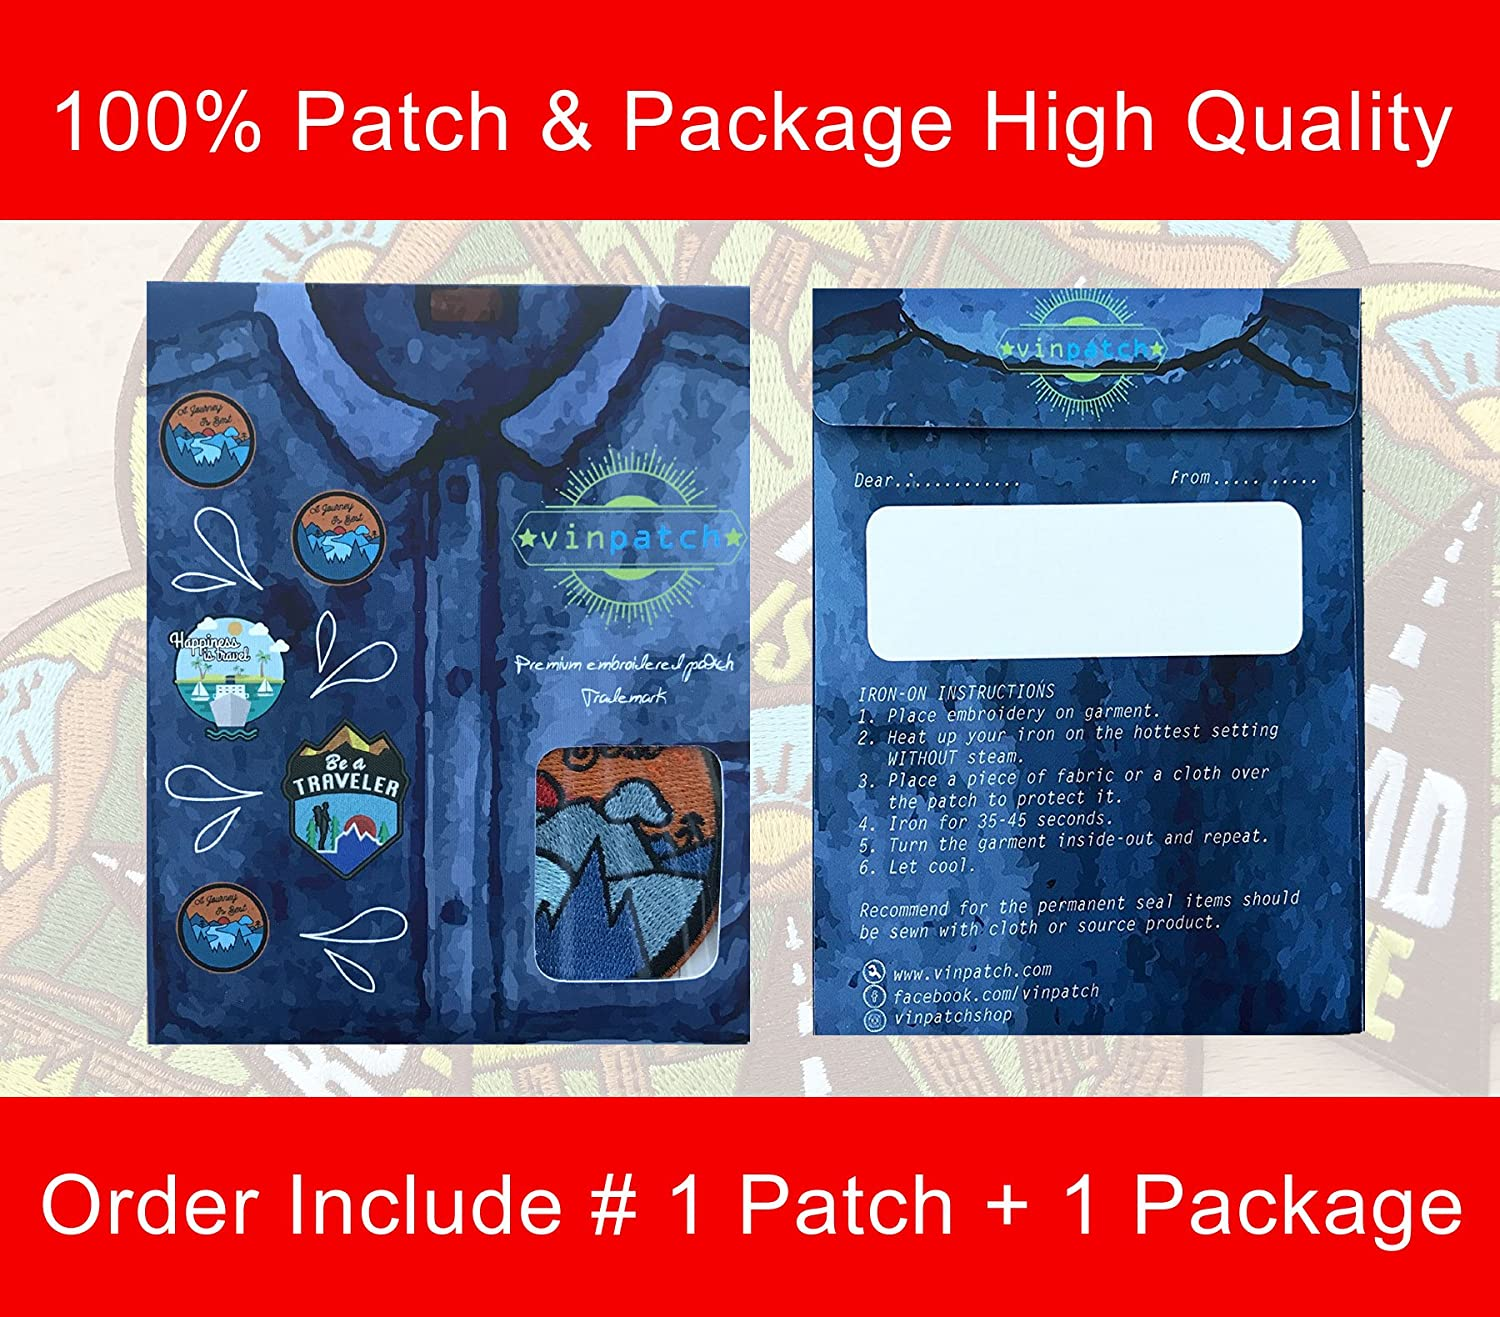 Amazon.com  Vinpatch Journey is Best Embroidered Sew On Iron on Patch -  Personalized Travel Patches Designed for Shirts Jackets Jeans and Backpacks  - Patch ... ecdcc3eee